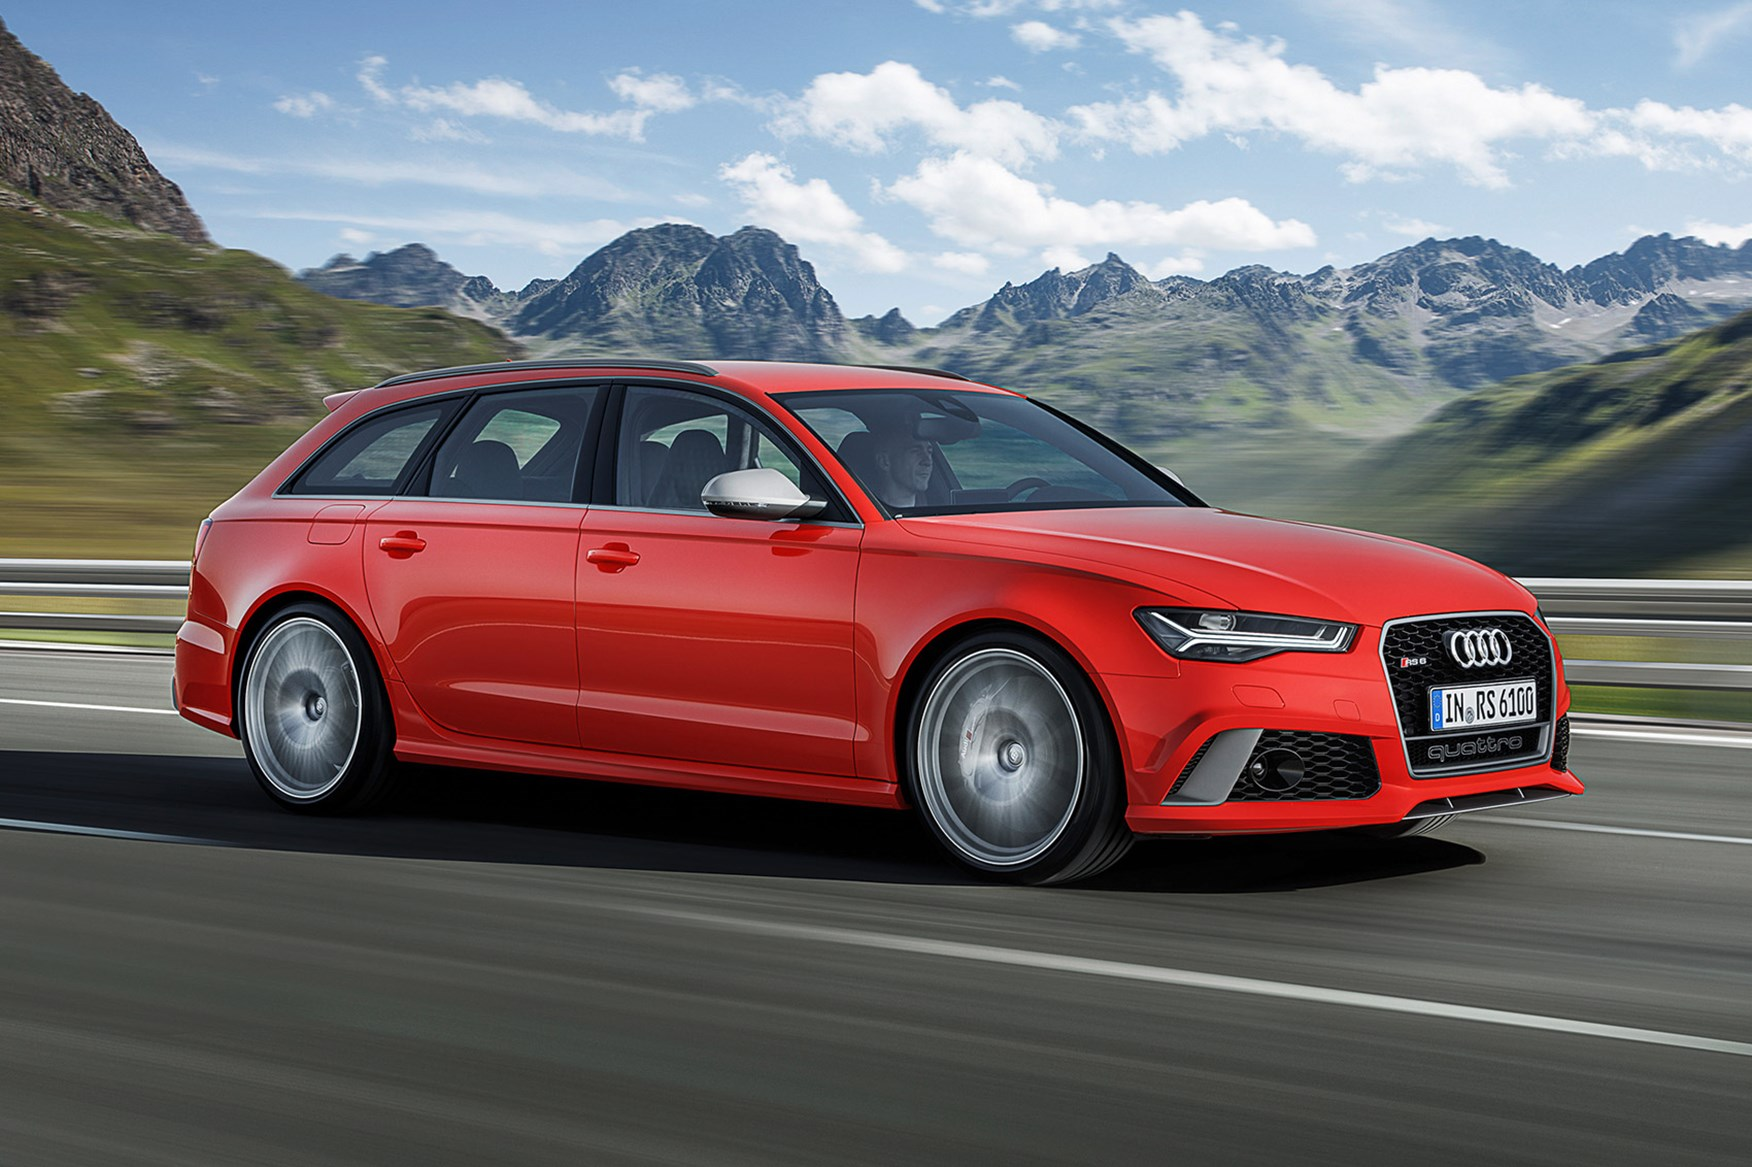 Audi Rs6 Avant Performance First Drive Car June 2016 By Car Magazine